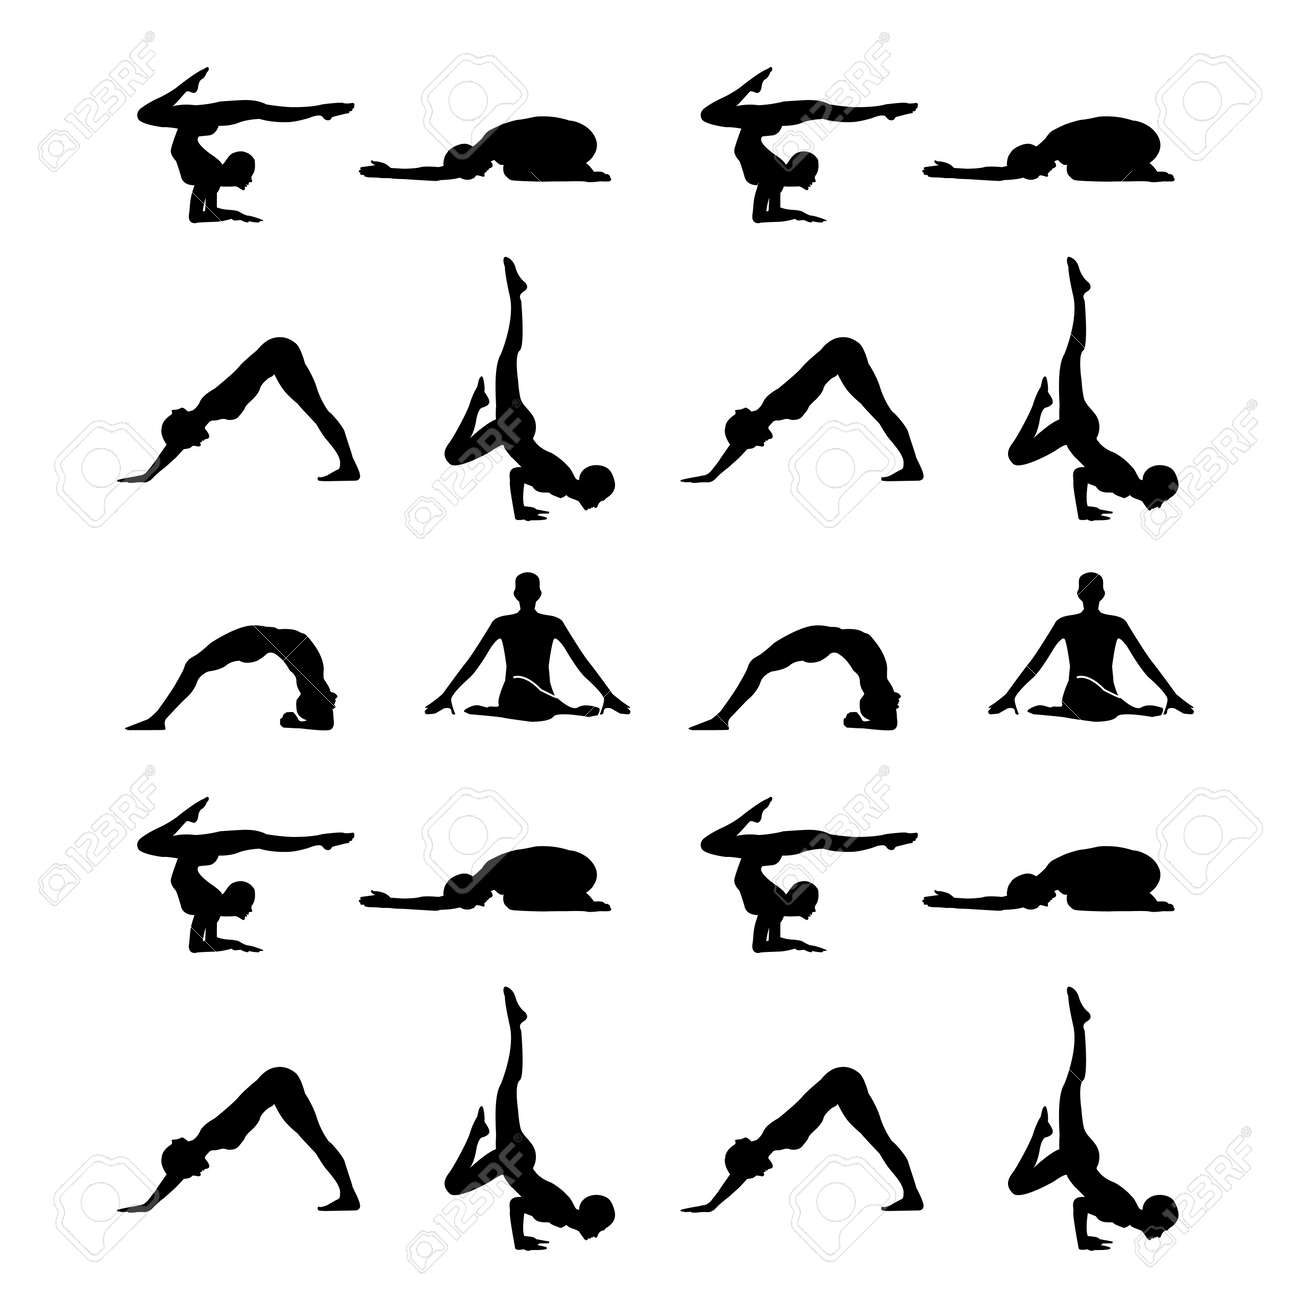 Yoga Poses Silhouette Wallpaper Royalty Free Cliparts Vectors And Stock Illustration Image 54970983